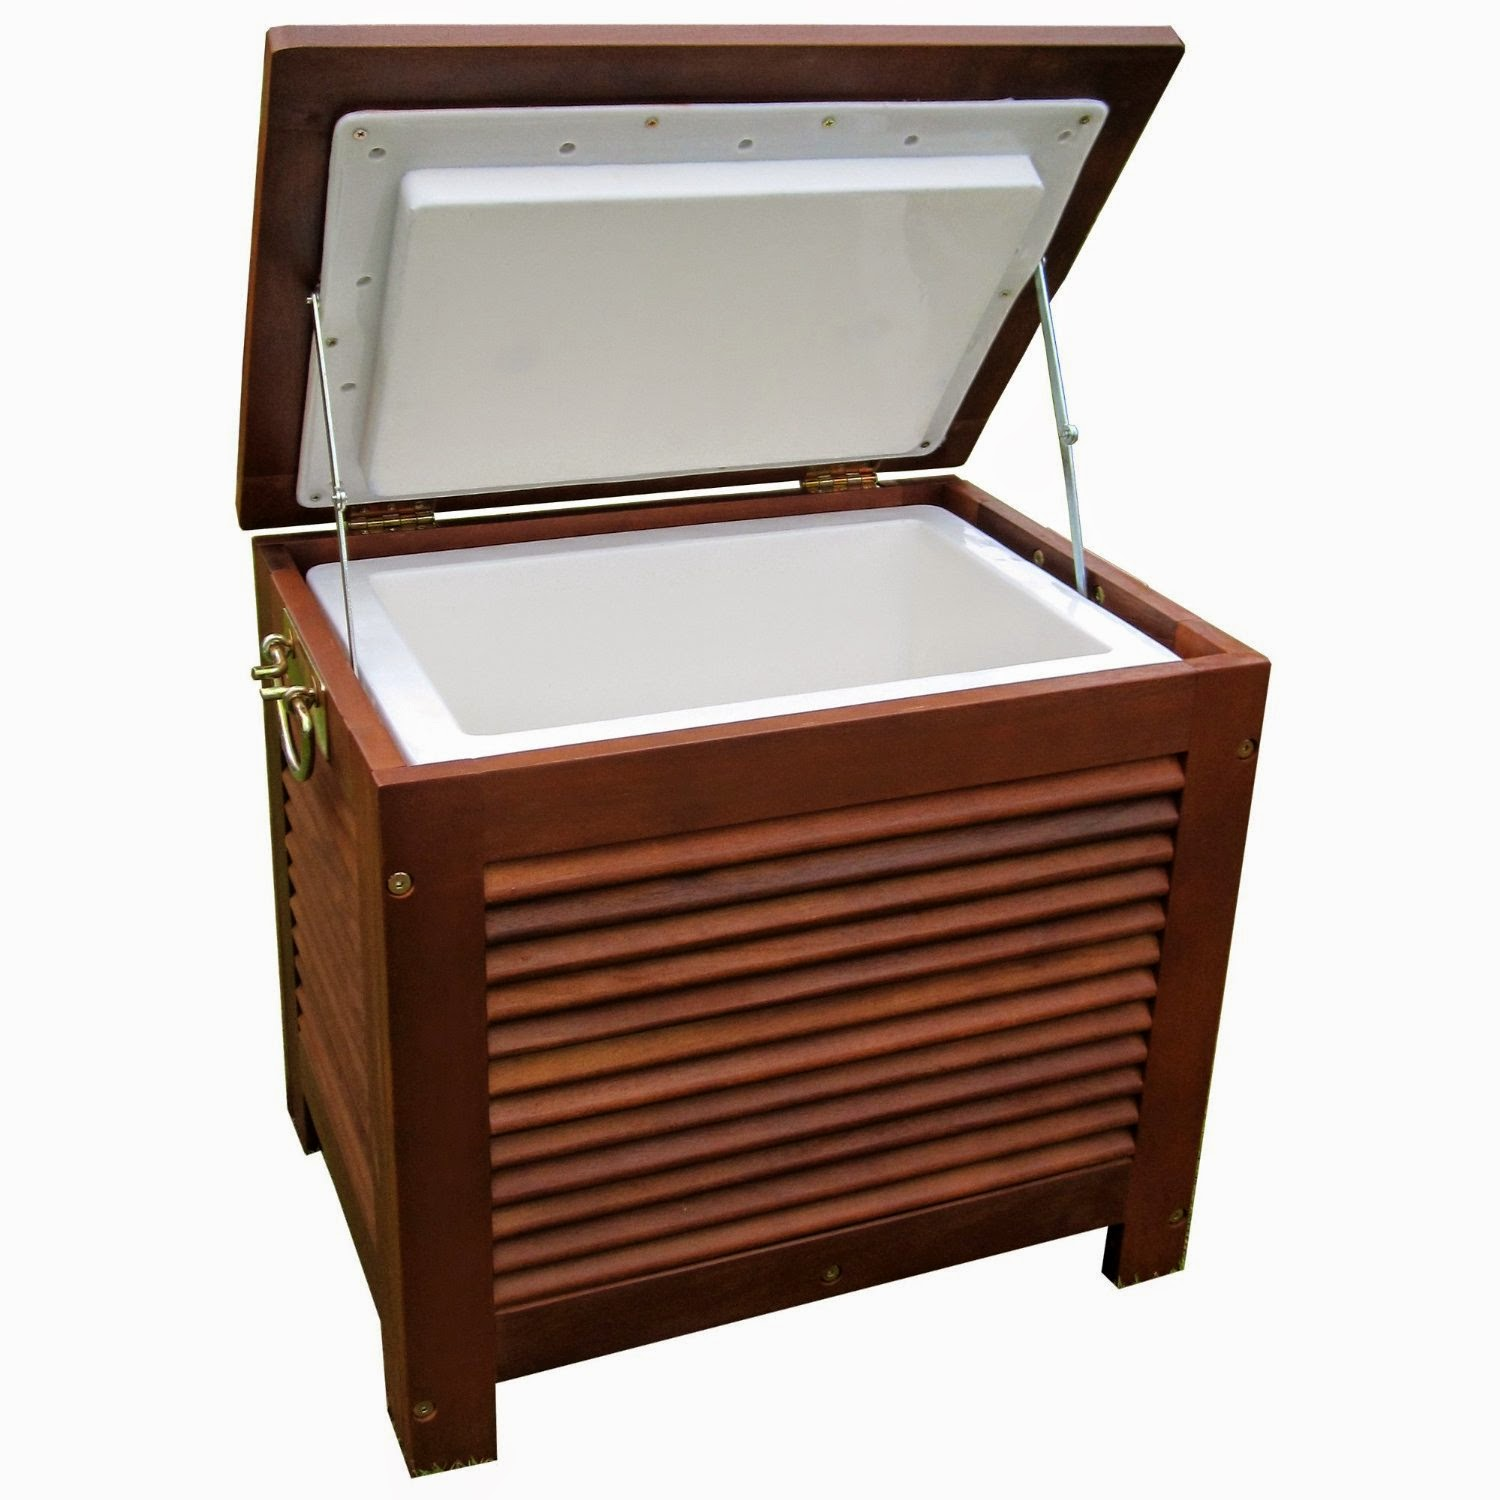 Wooden Patio Cooler